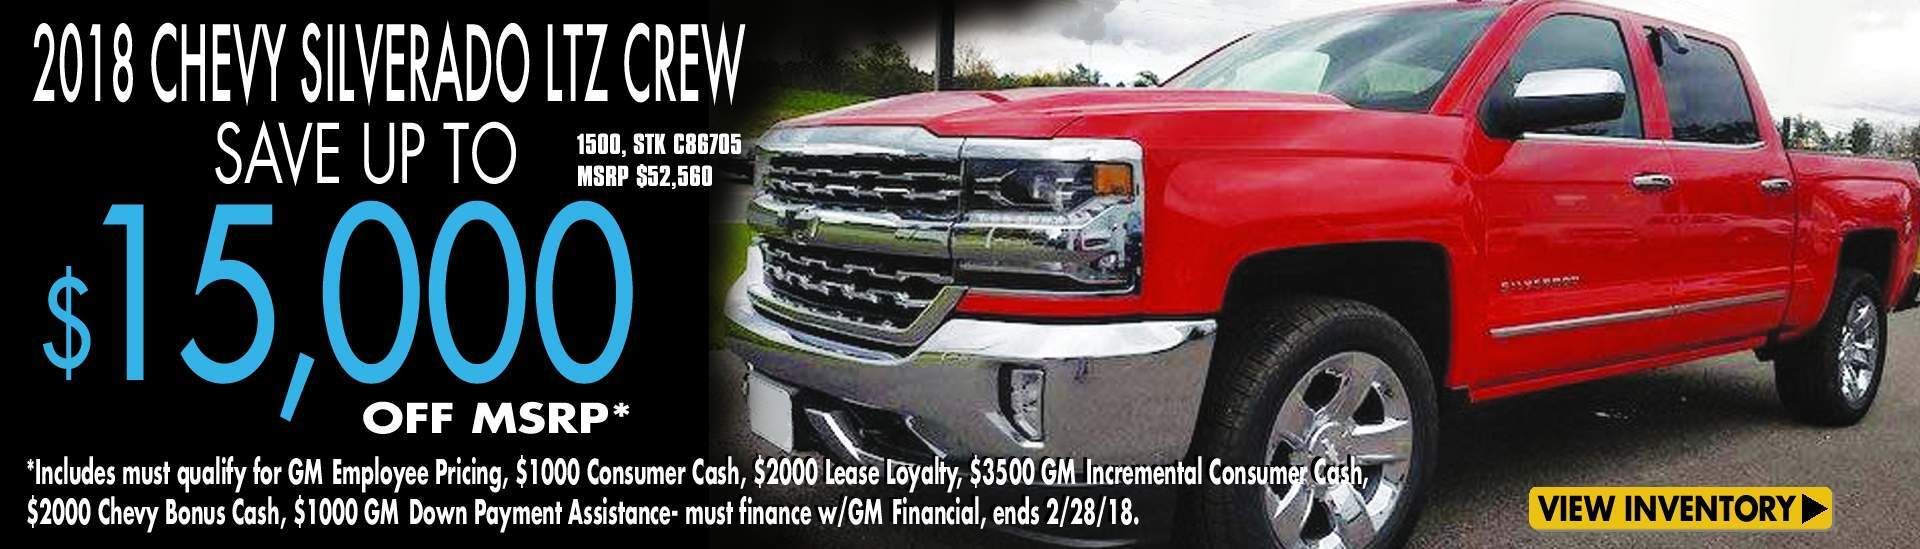 Save up to $15K off MSRP